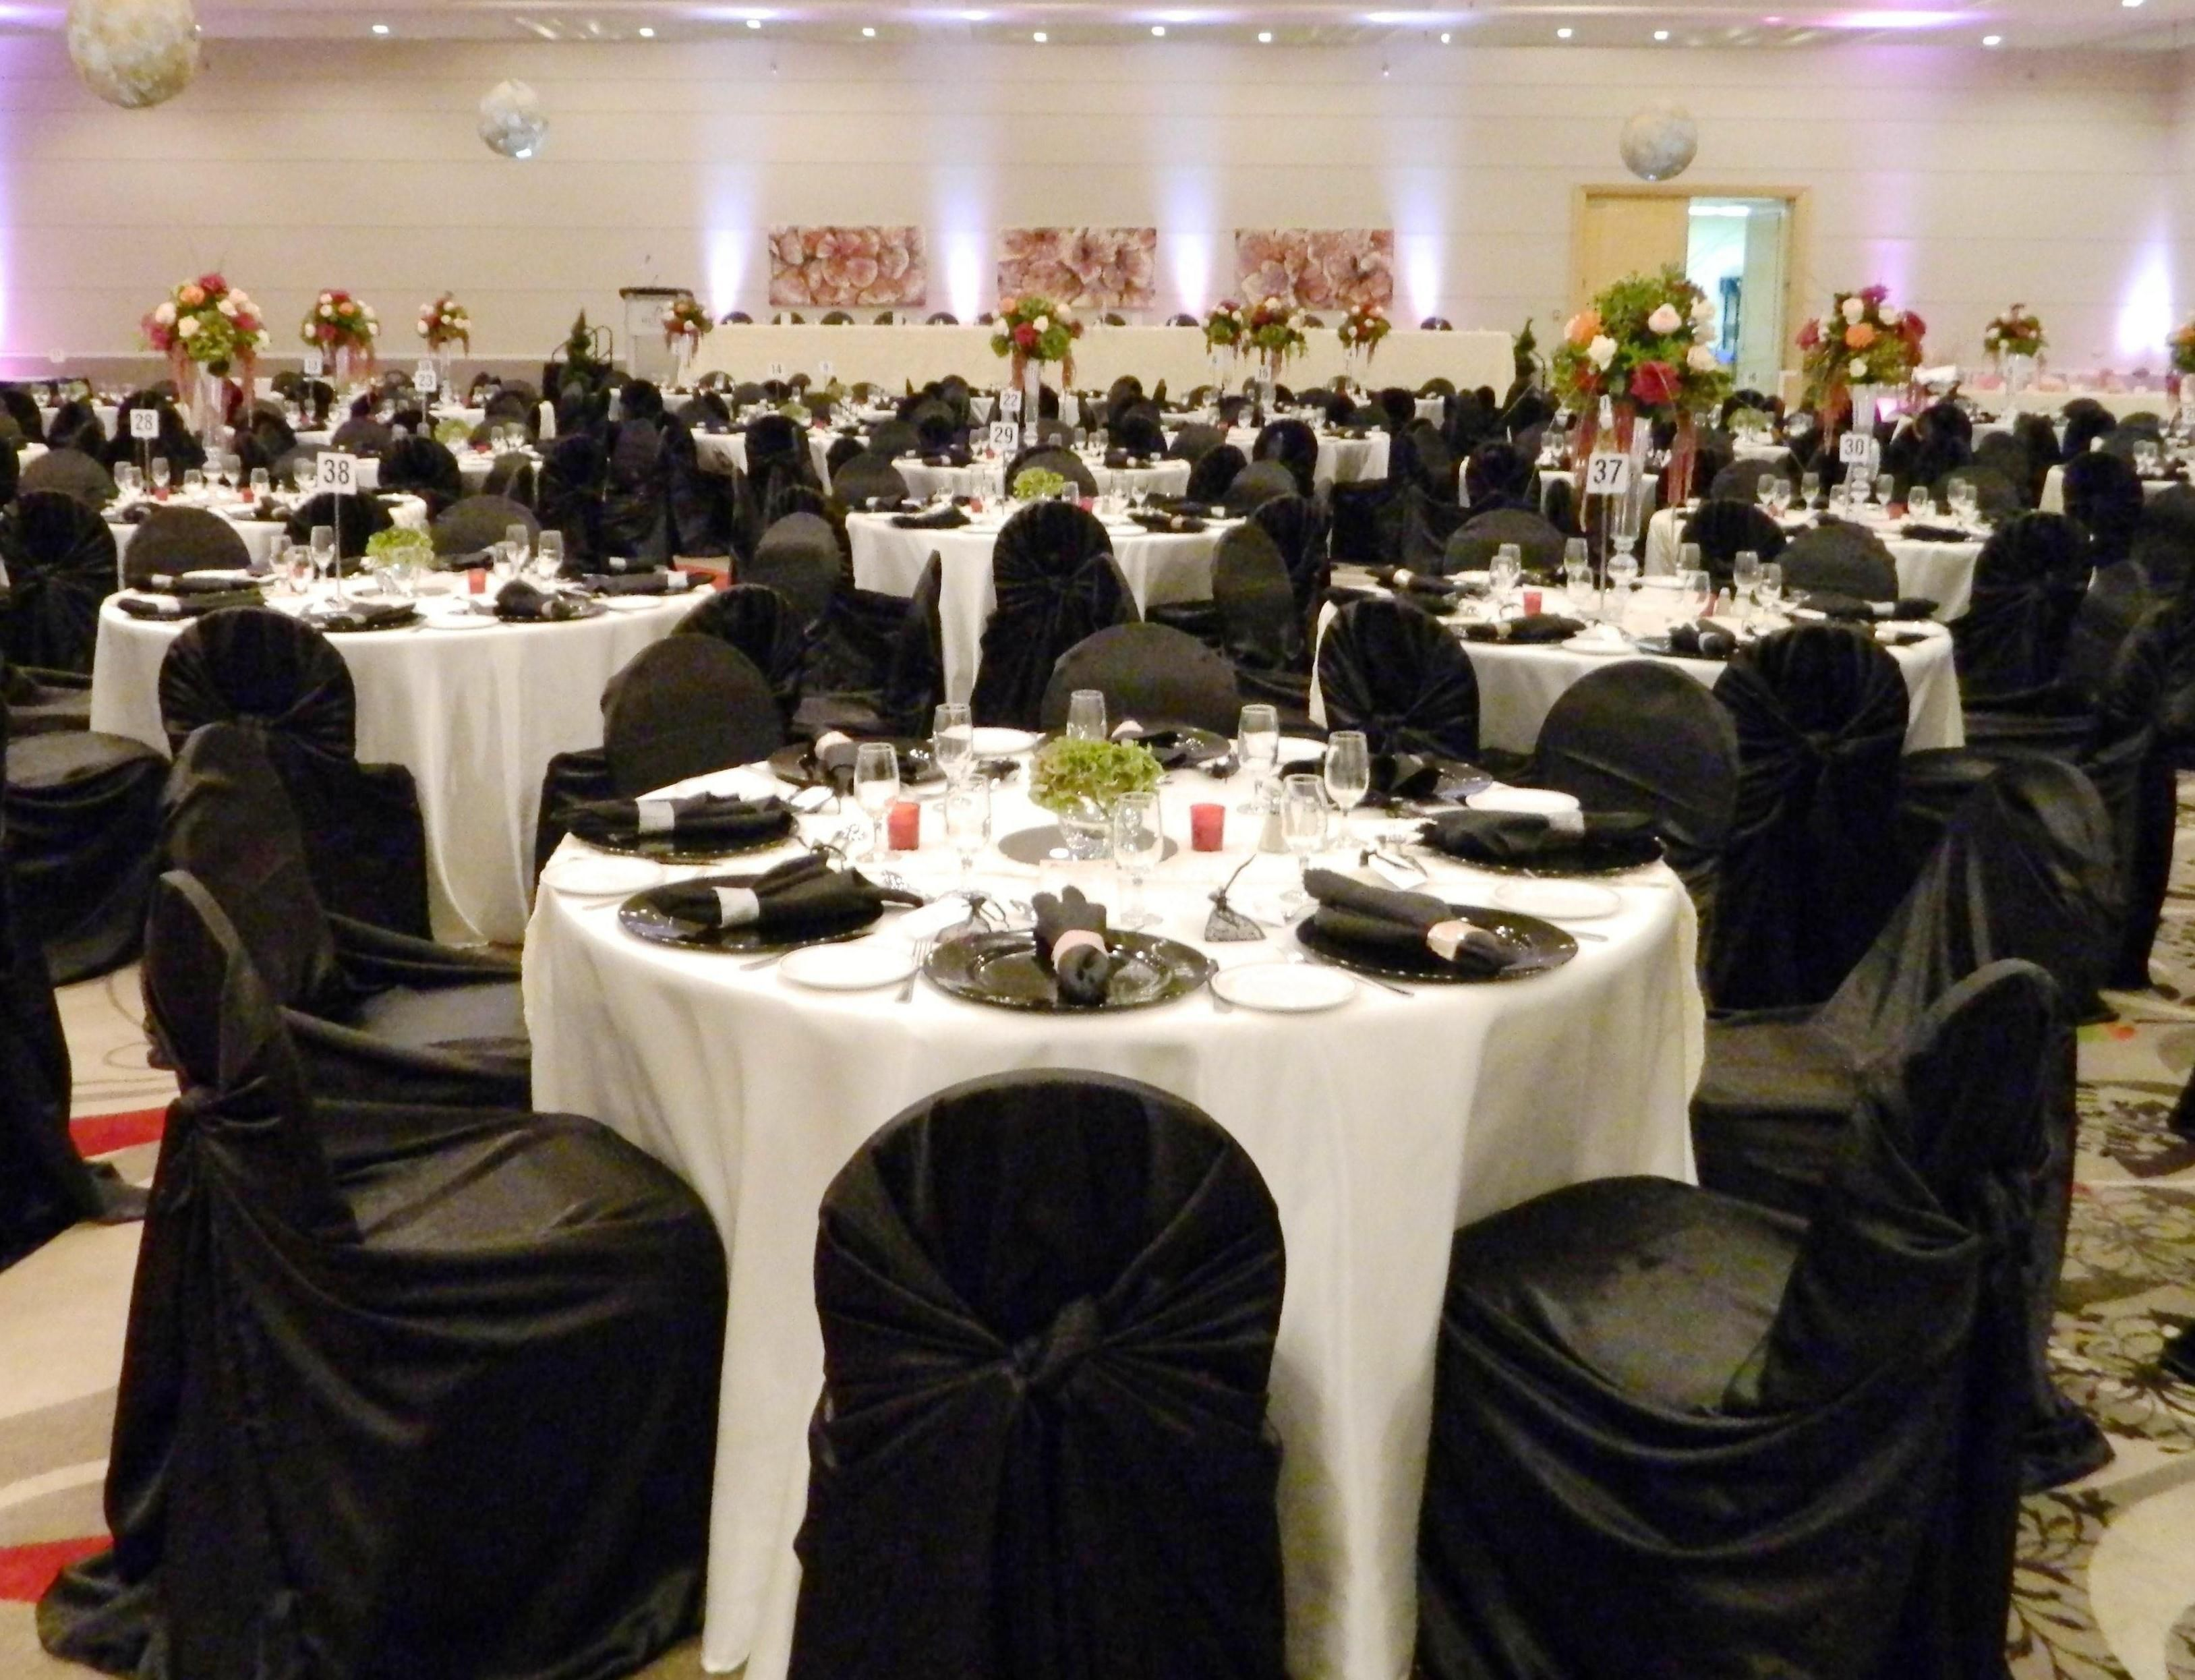 gold chair covers with black sash ikea pello white tablecloths runner napkins